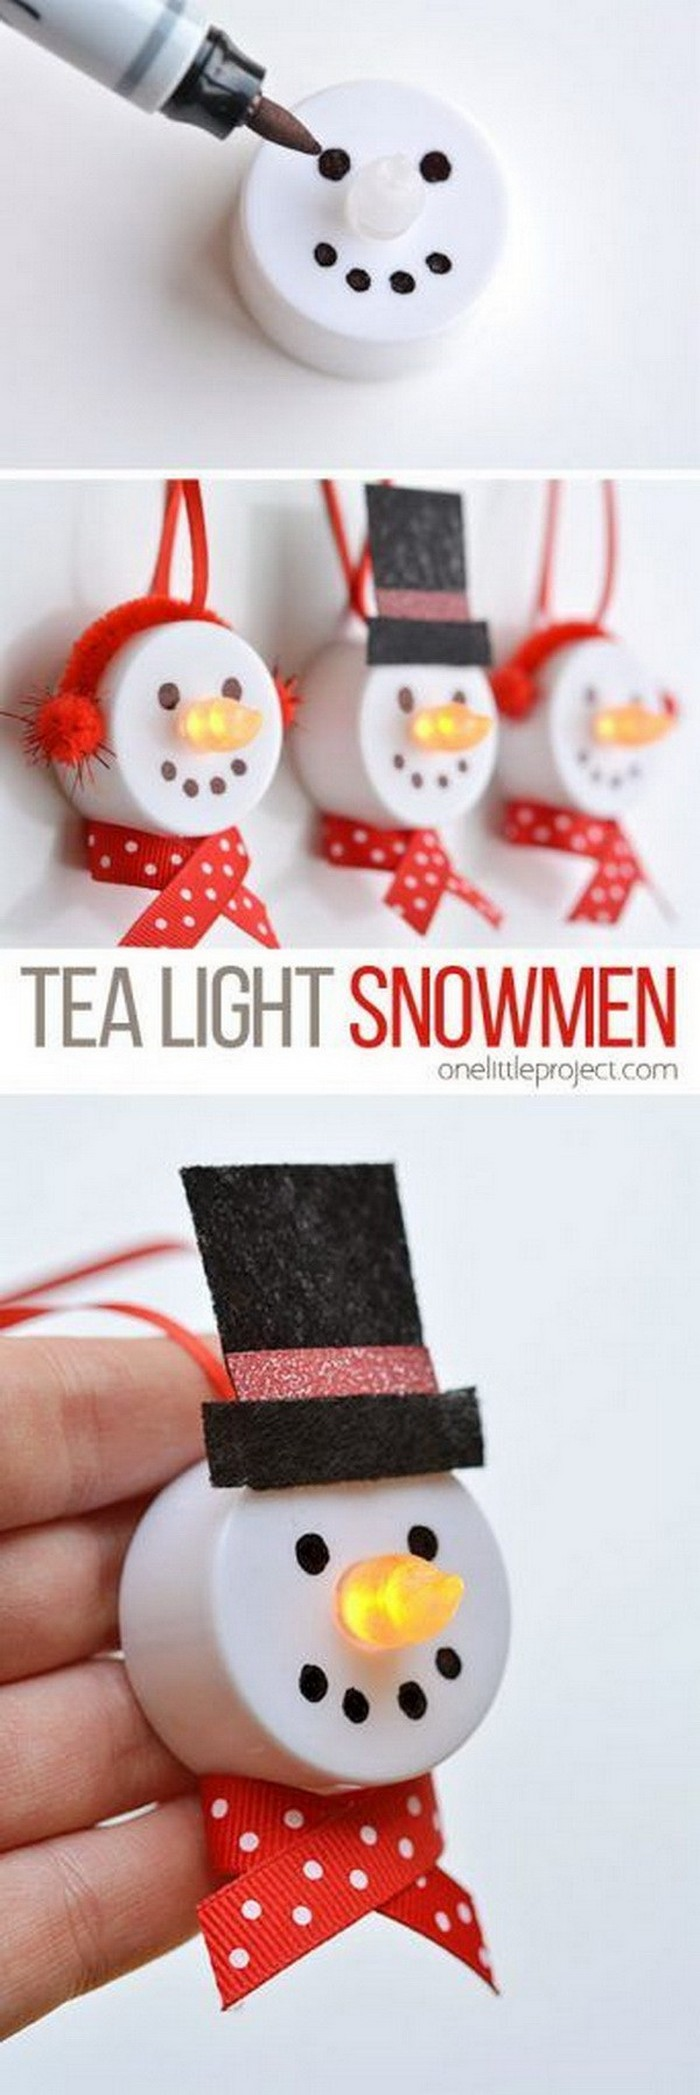 Light Snowman Ornaments - DIY Christmas crafts